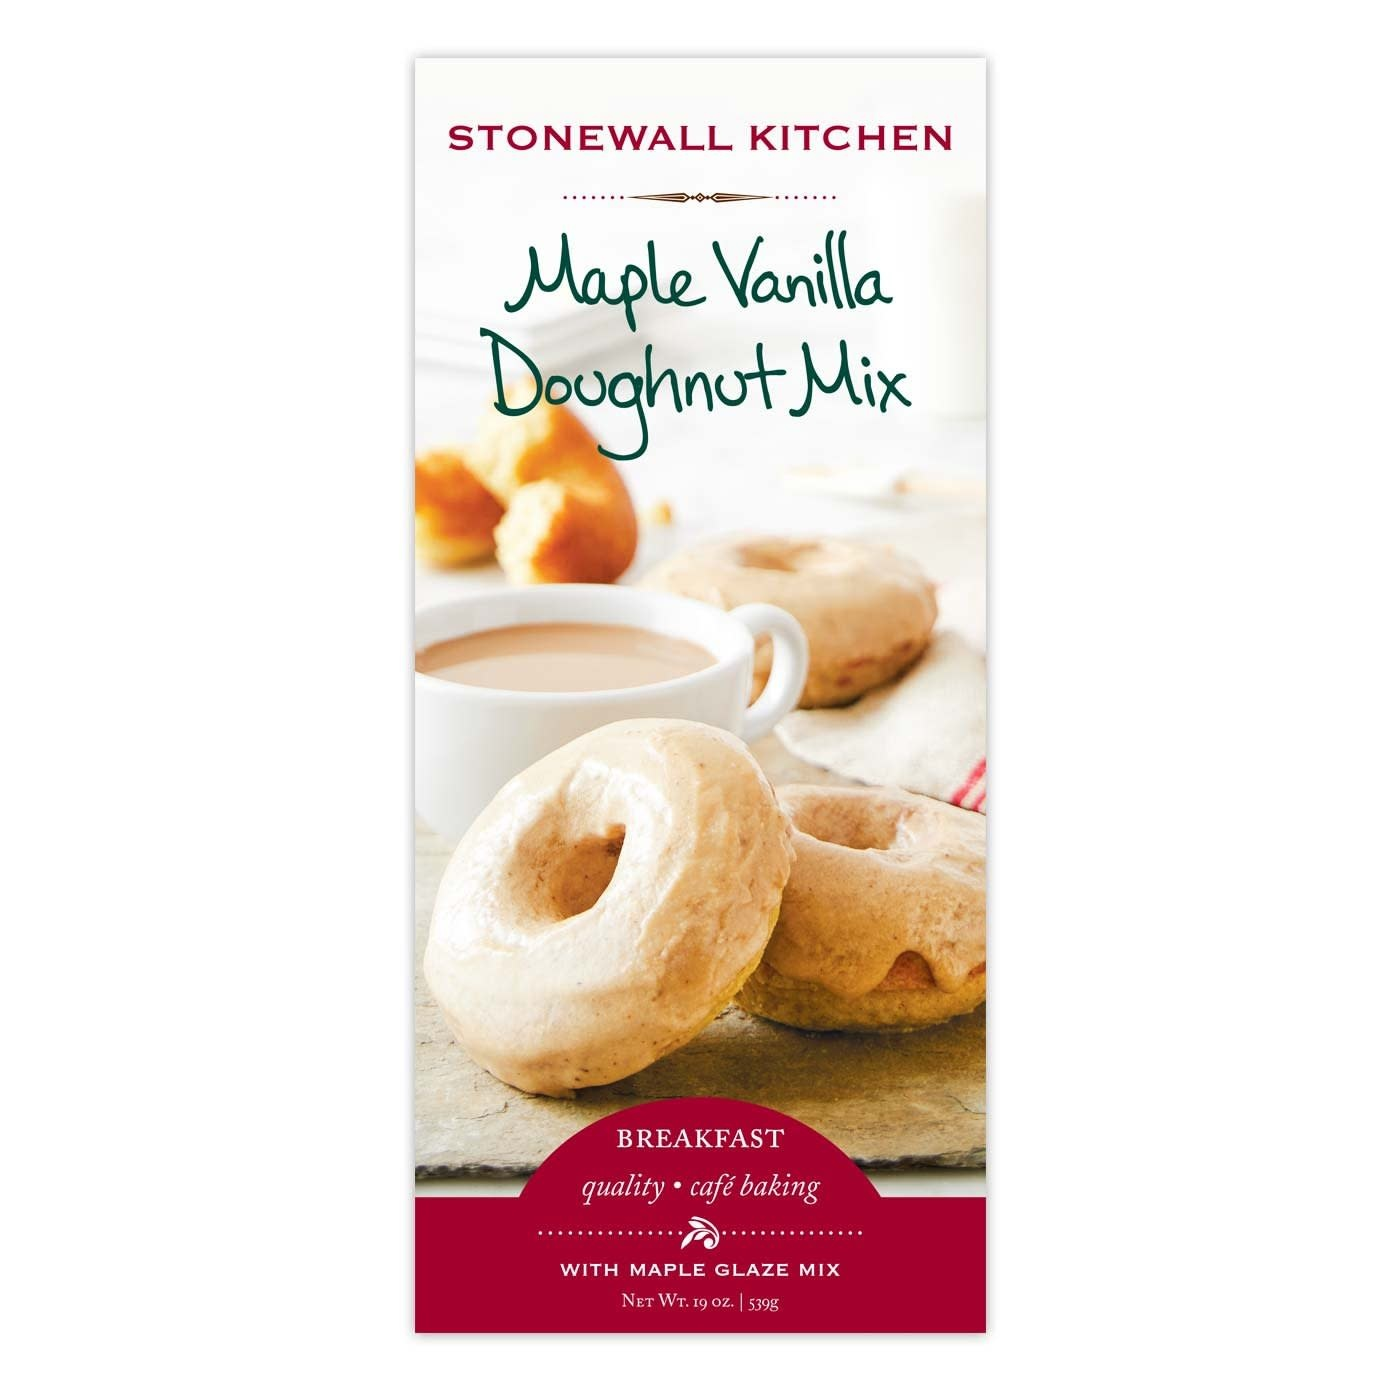 Stonewall Kitchen Doughnut Mix Vanilla Maple Glaze